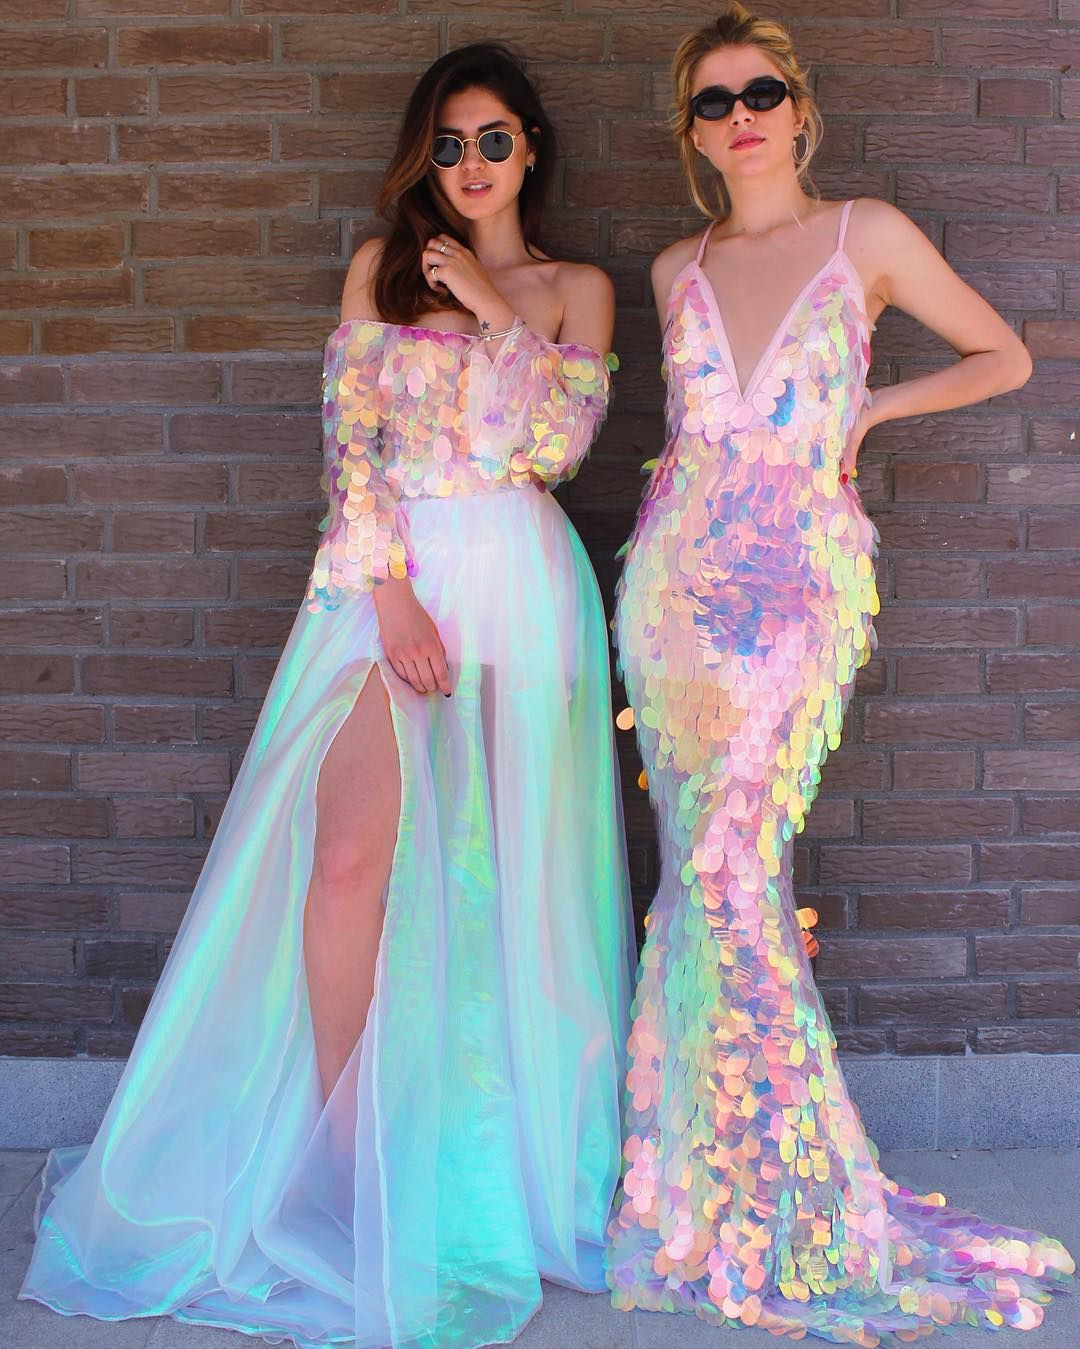 Fun holographic sequinned wedding gowns that remind us of mermaids ...